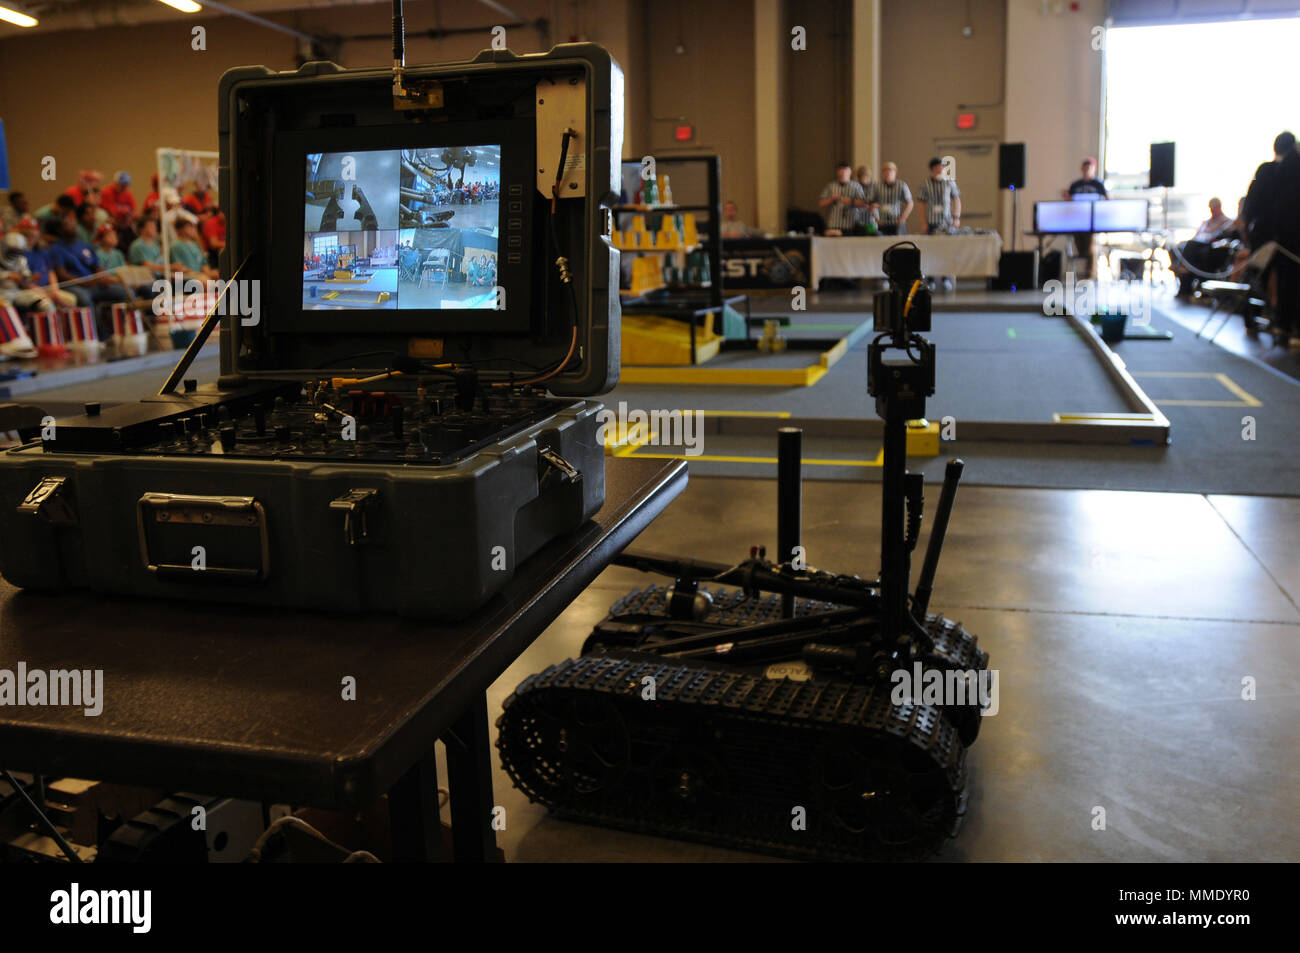 The 167th Theater Sustainment Command Tsc Opened Its Doors For The